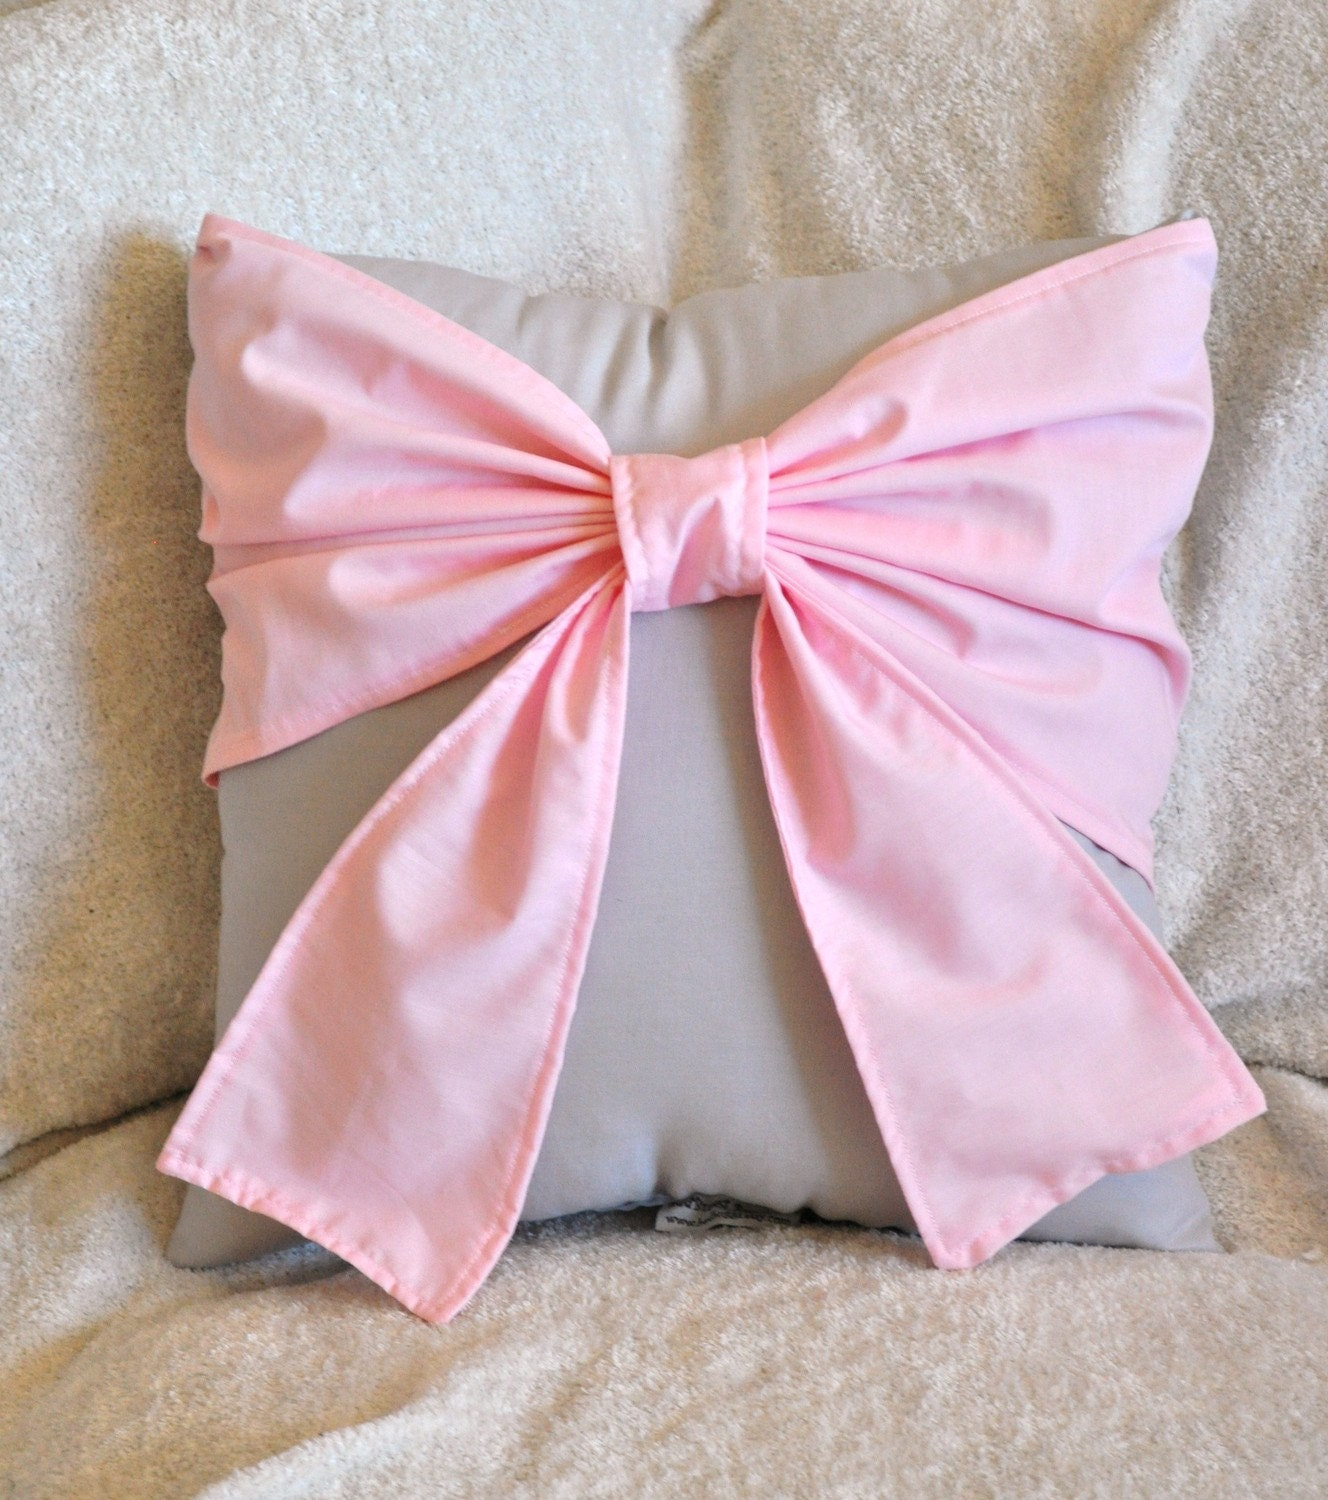 Decorative Pillows For Couch Etsy : Throw Pillow Decorative Pillow Light Pink Big Bow by bedbuggs